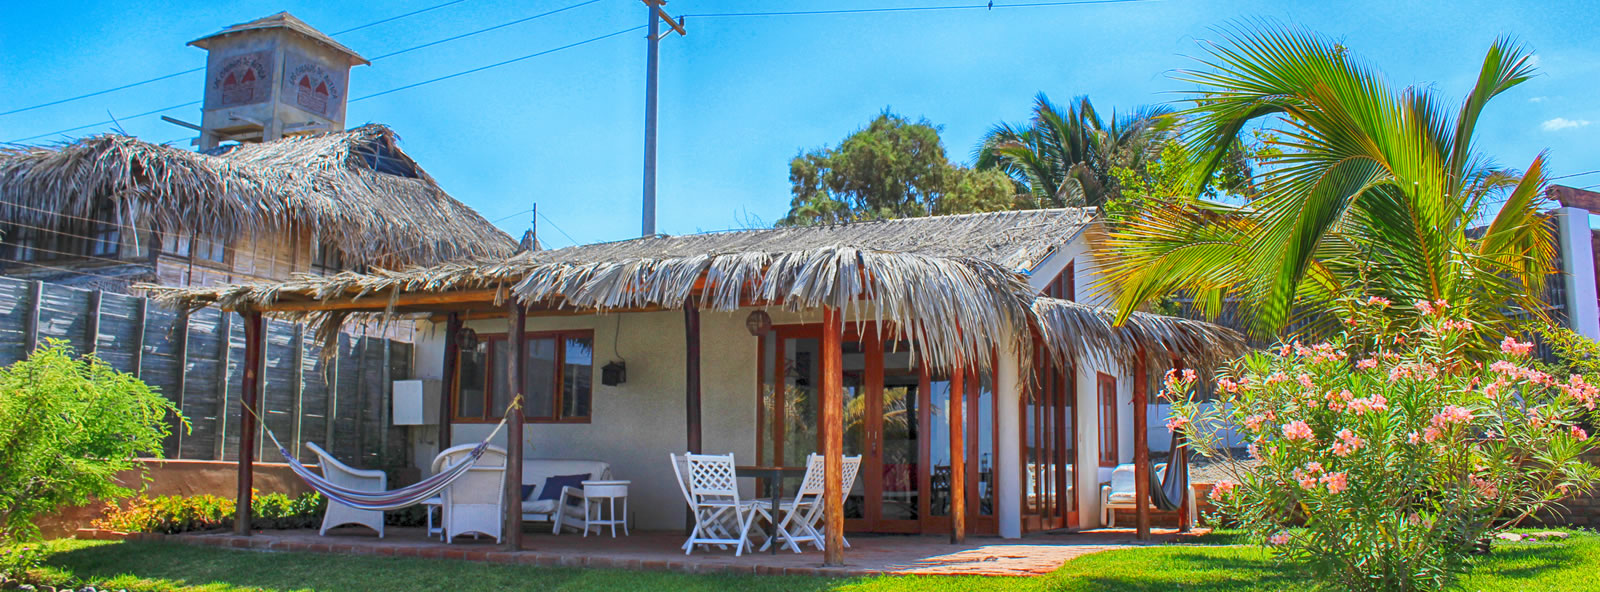 Discover our Bungalow!